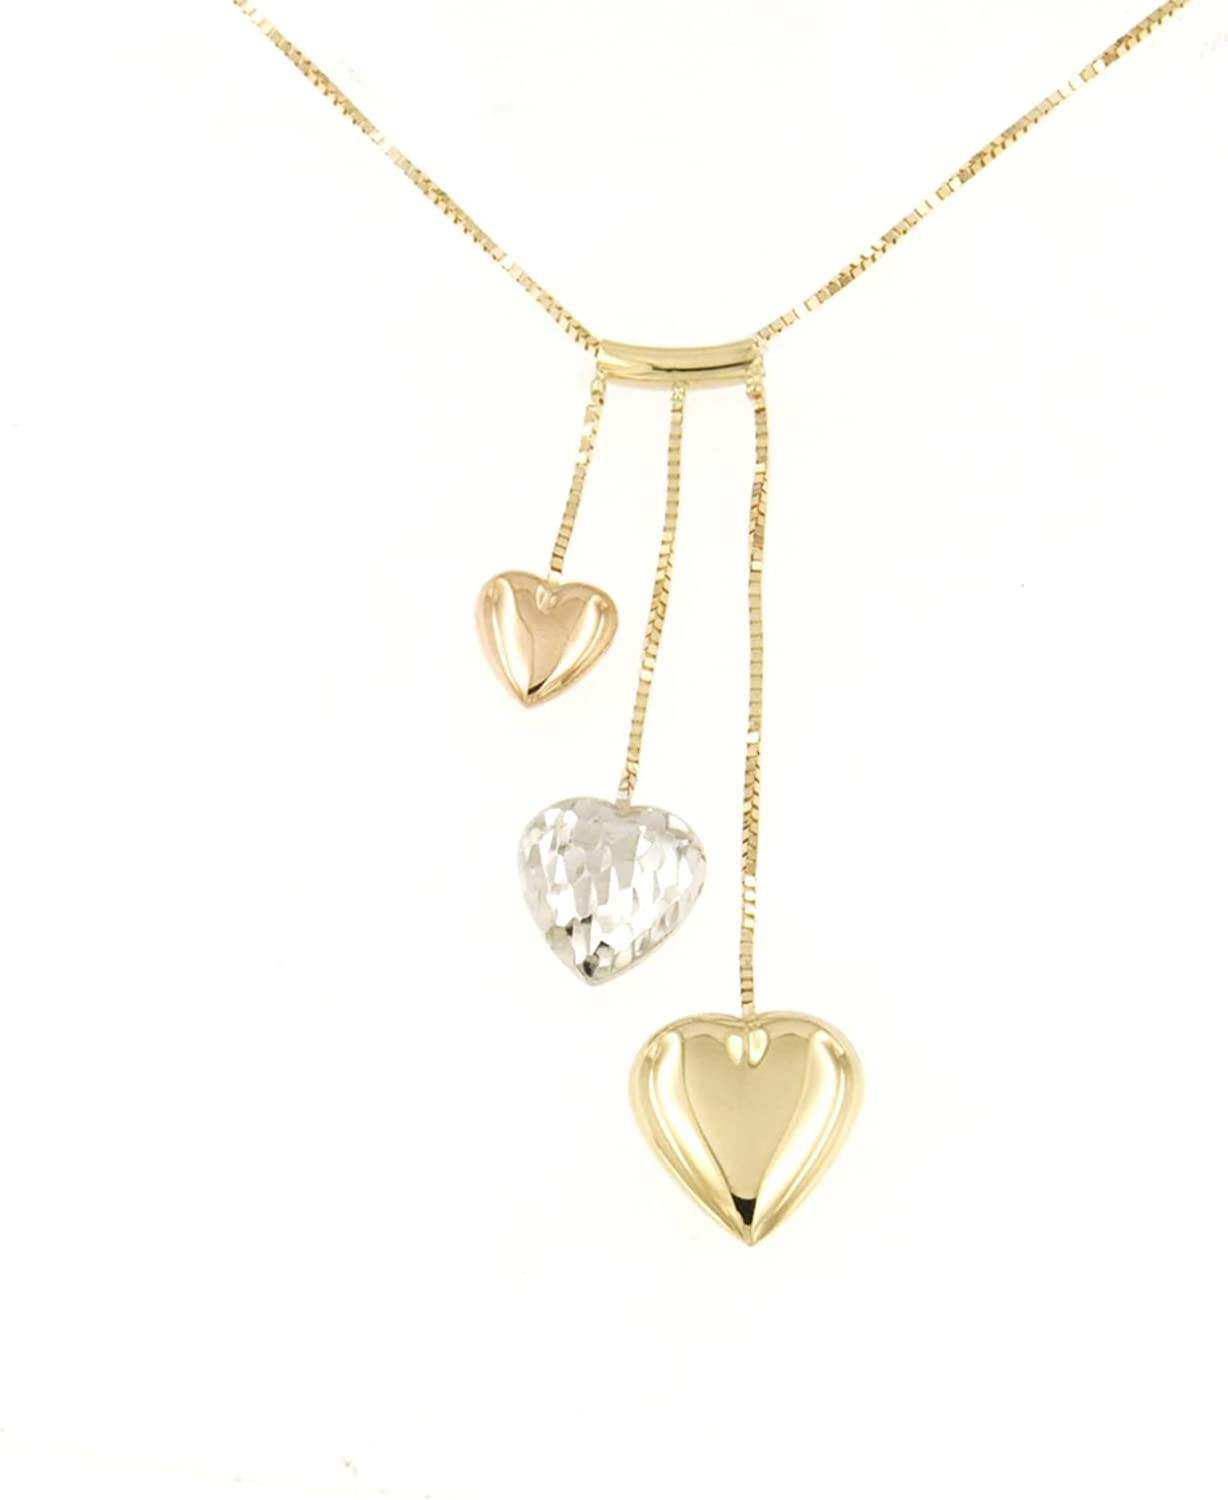 Lucchetta - Premium Real 14 karat Yellow White Rose Gold Heart Necklace, Tiny Gold Chain 16+2 Inch, 14k Italian Solid Gold Necklaces for Women Teen Girls, Made in Italy Fine Jewelry, XS1765-VE40